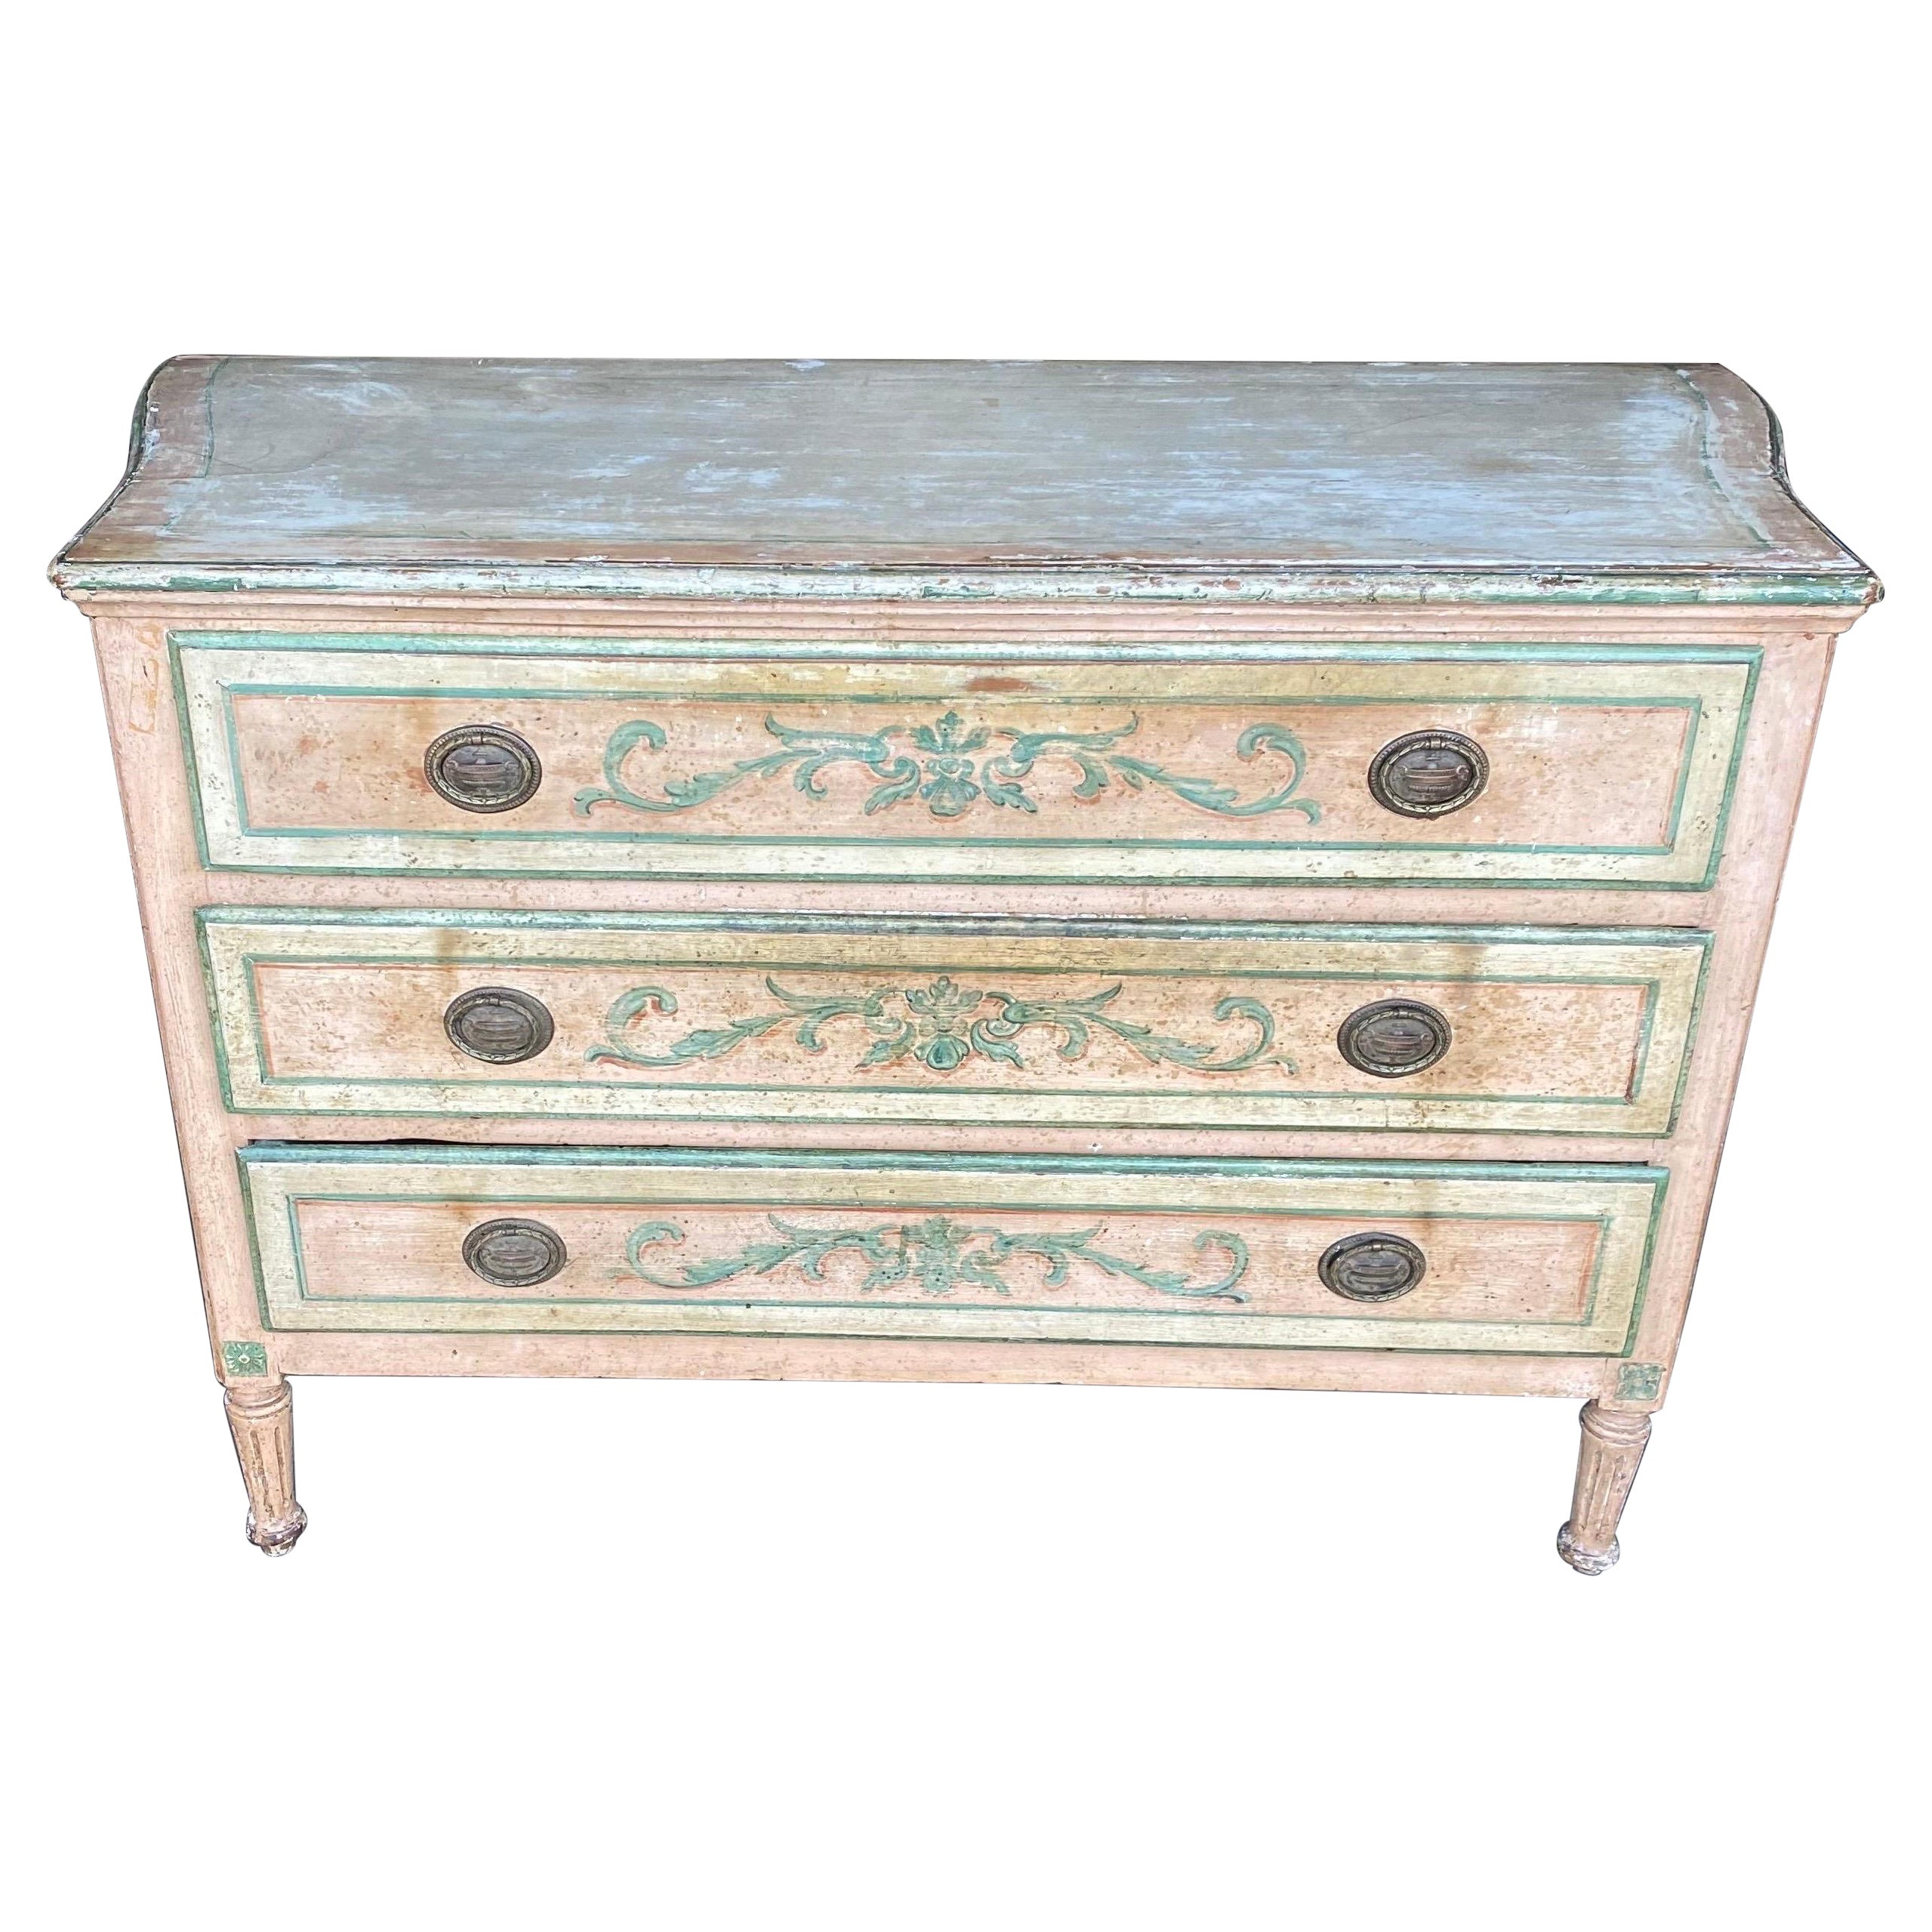 19th Century Painted Polychrome Venetian 3 Drawer Commode